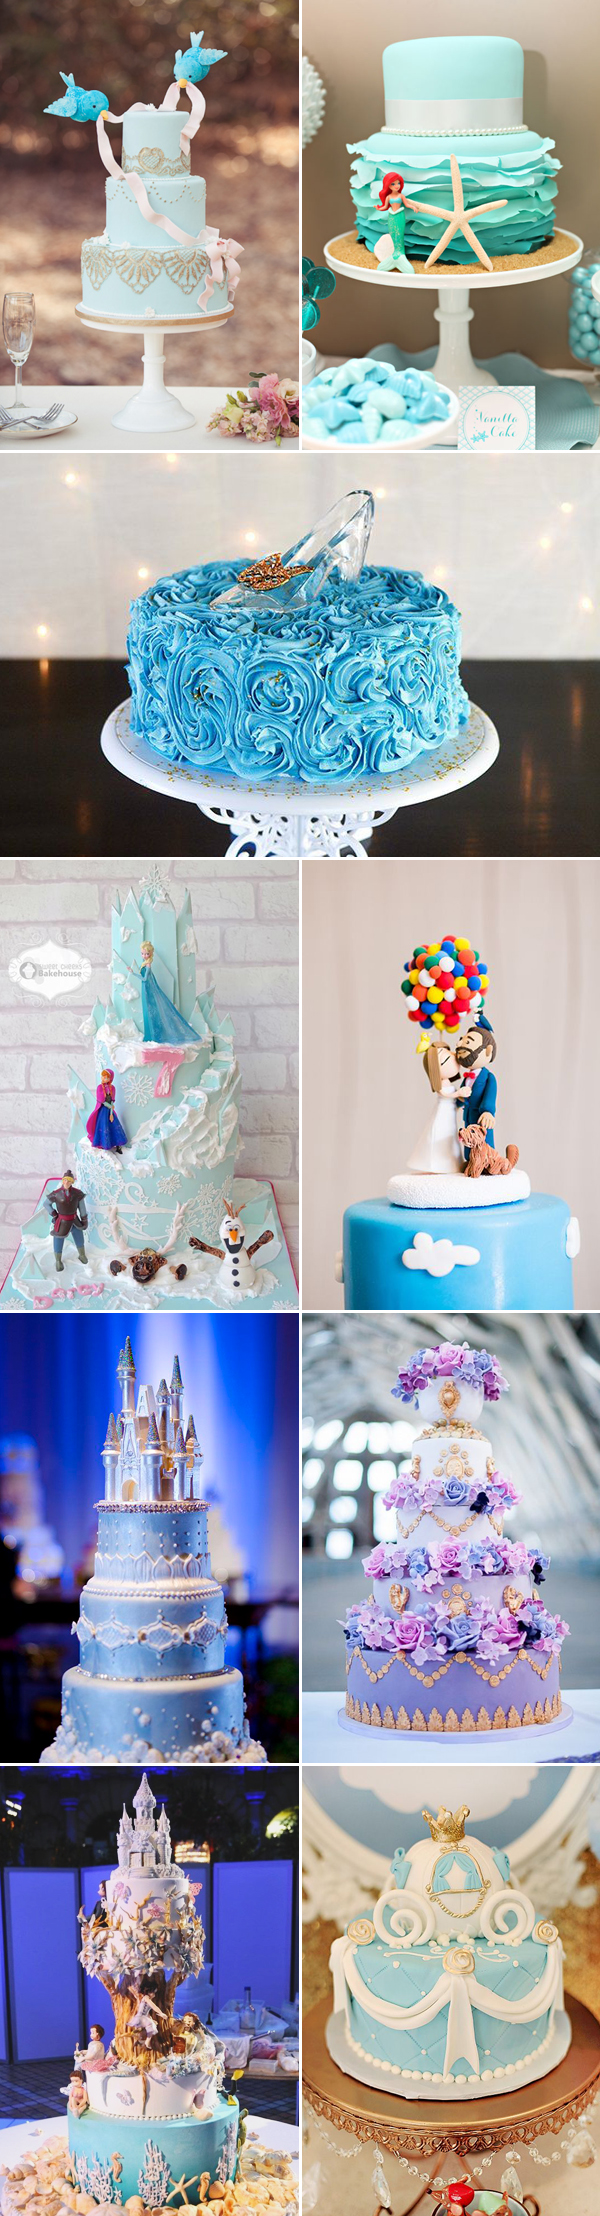 disney theme for wedding cake ideas